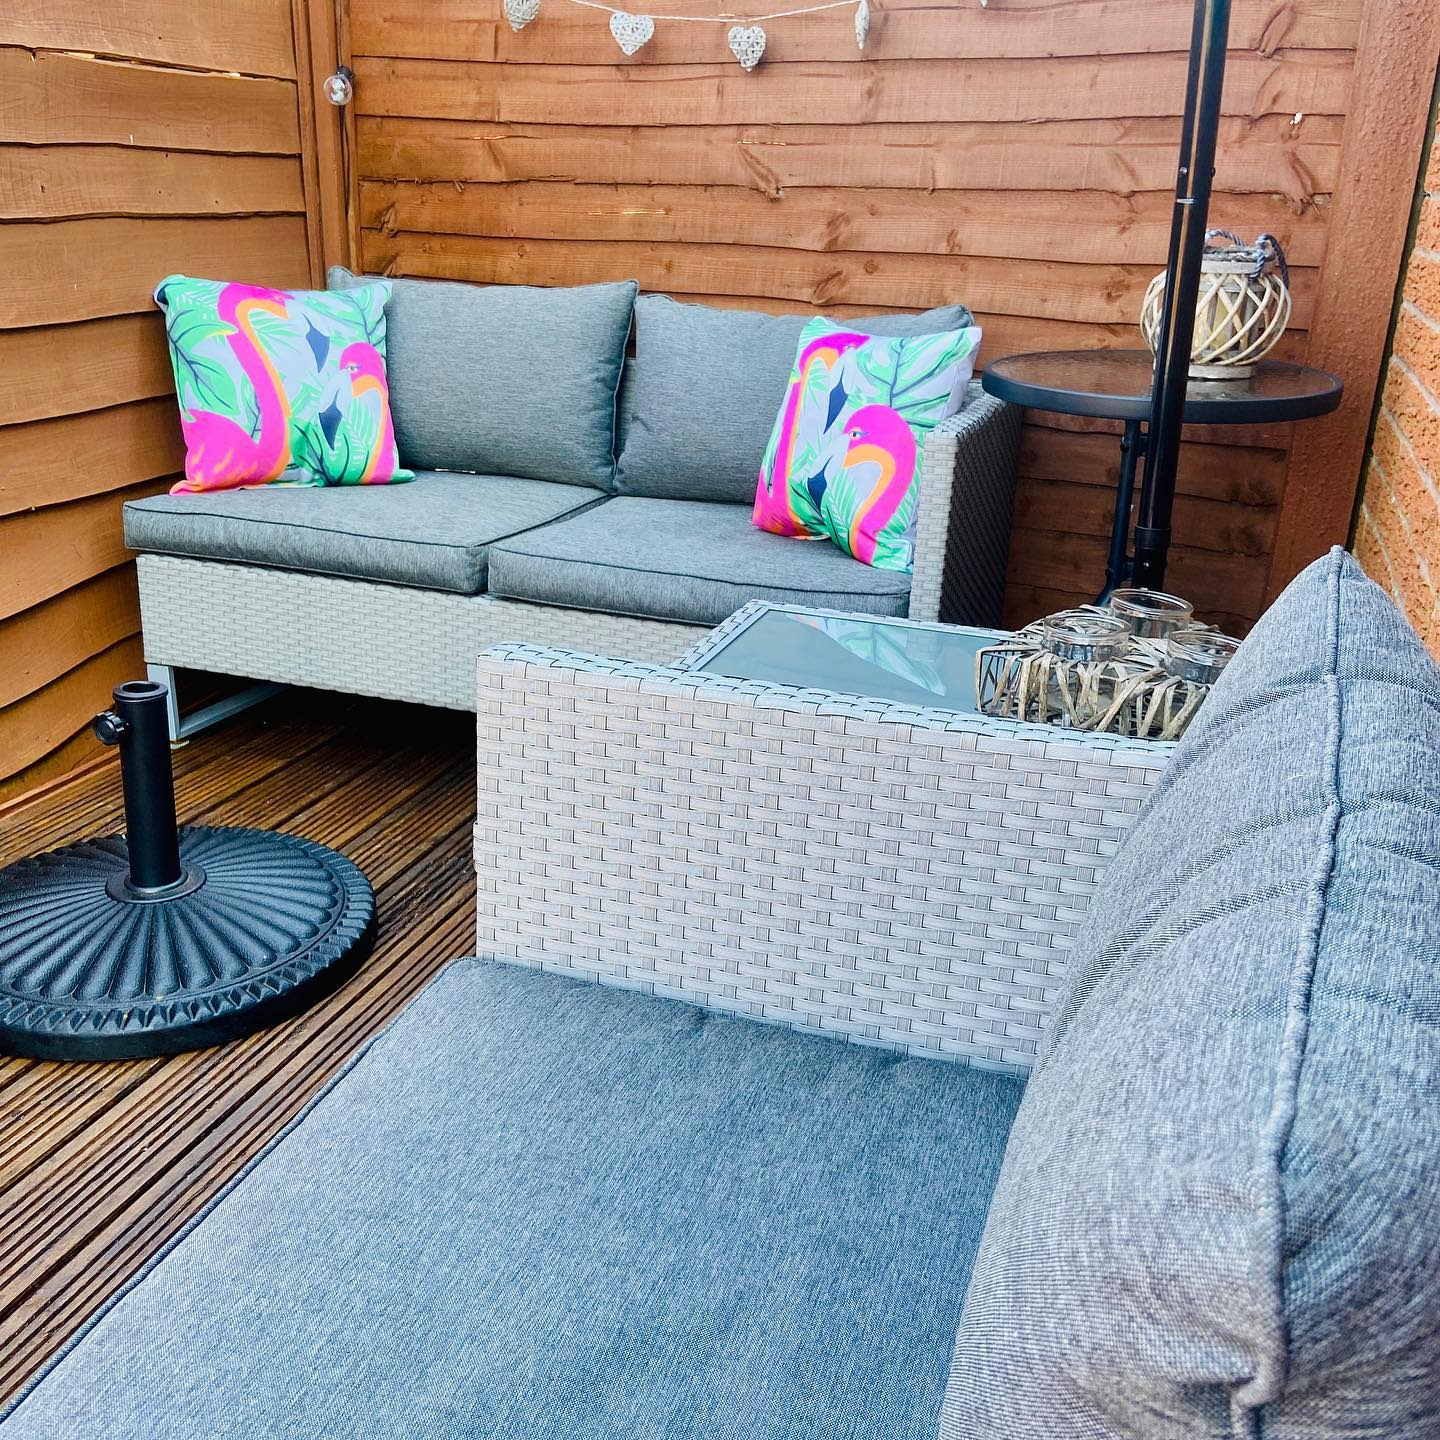 Privacy Apartment Patio Ideas -our_cosylittlehouse